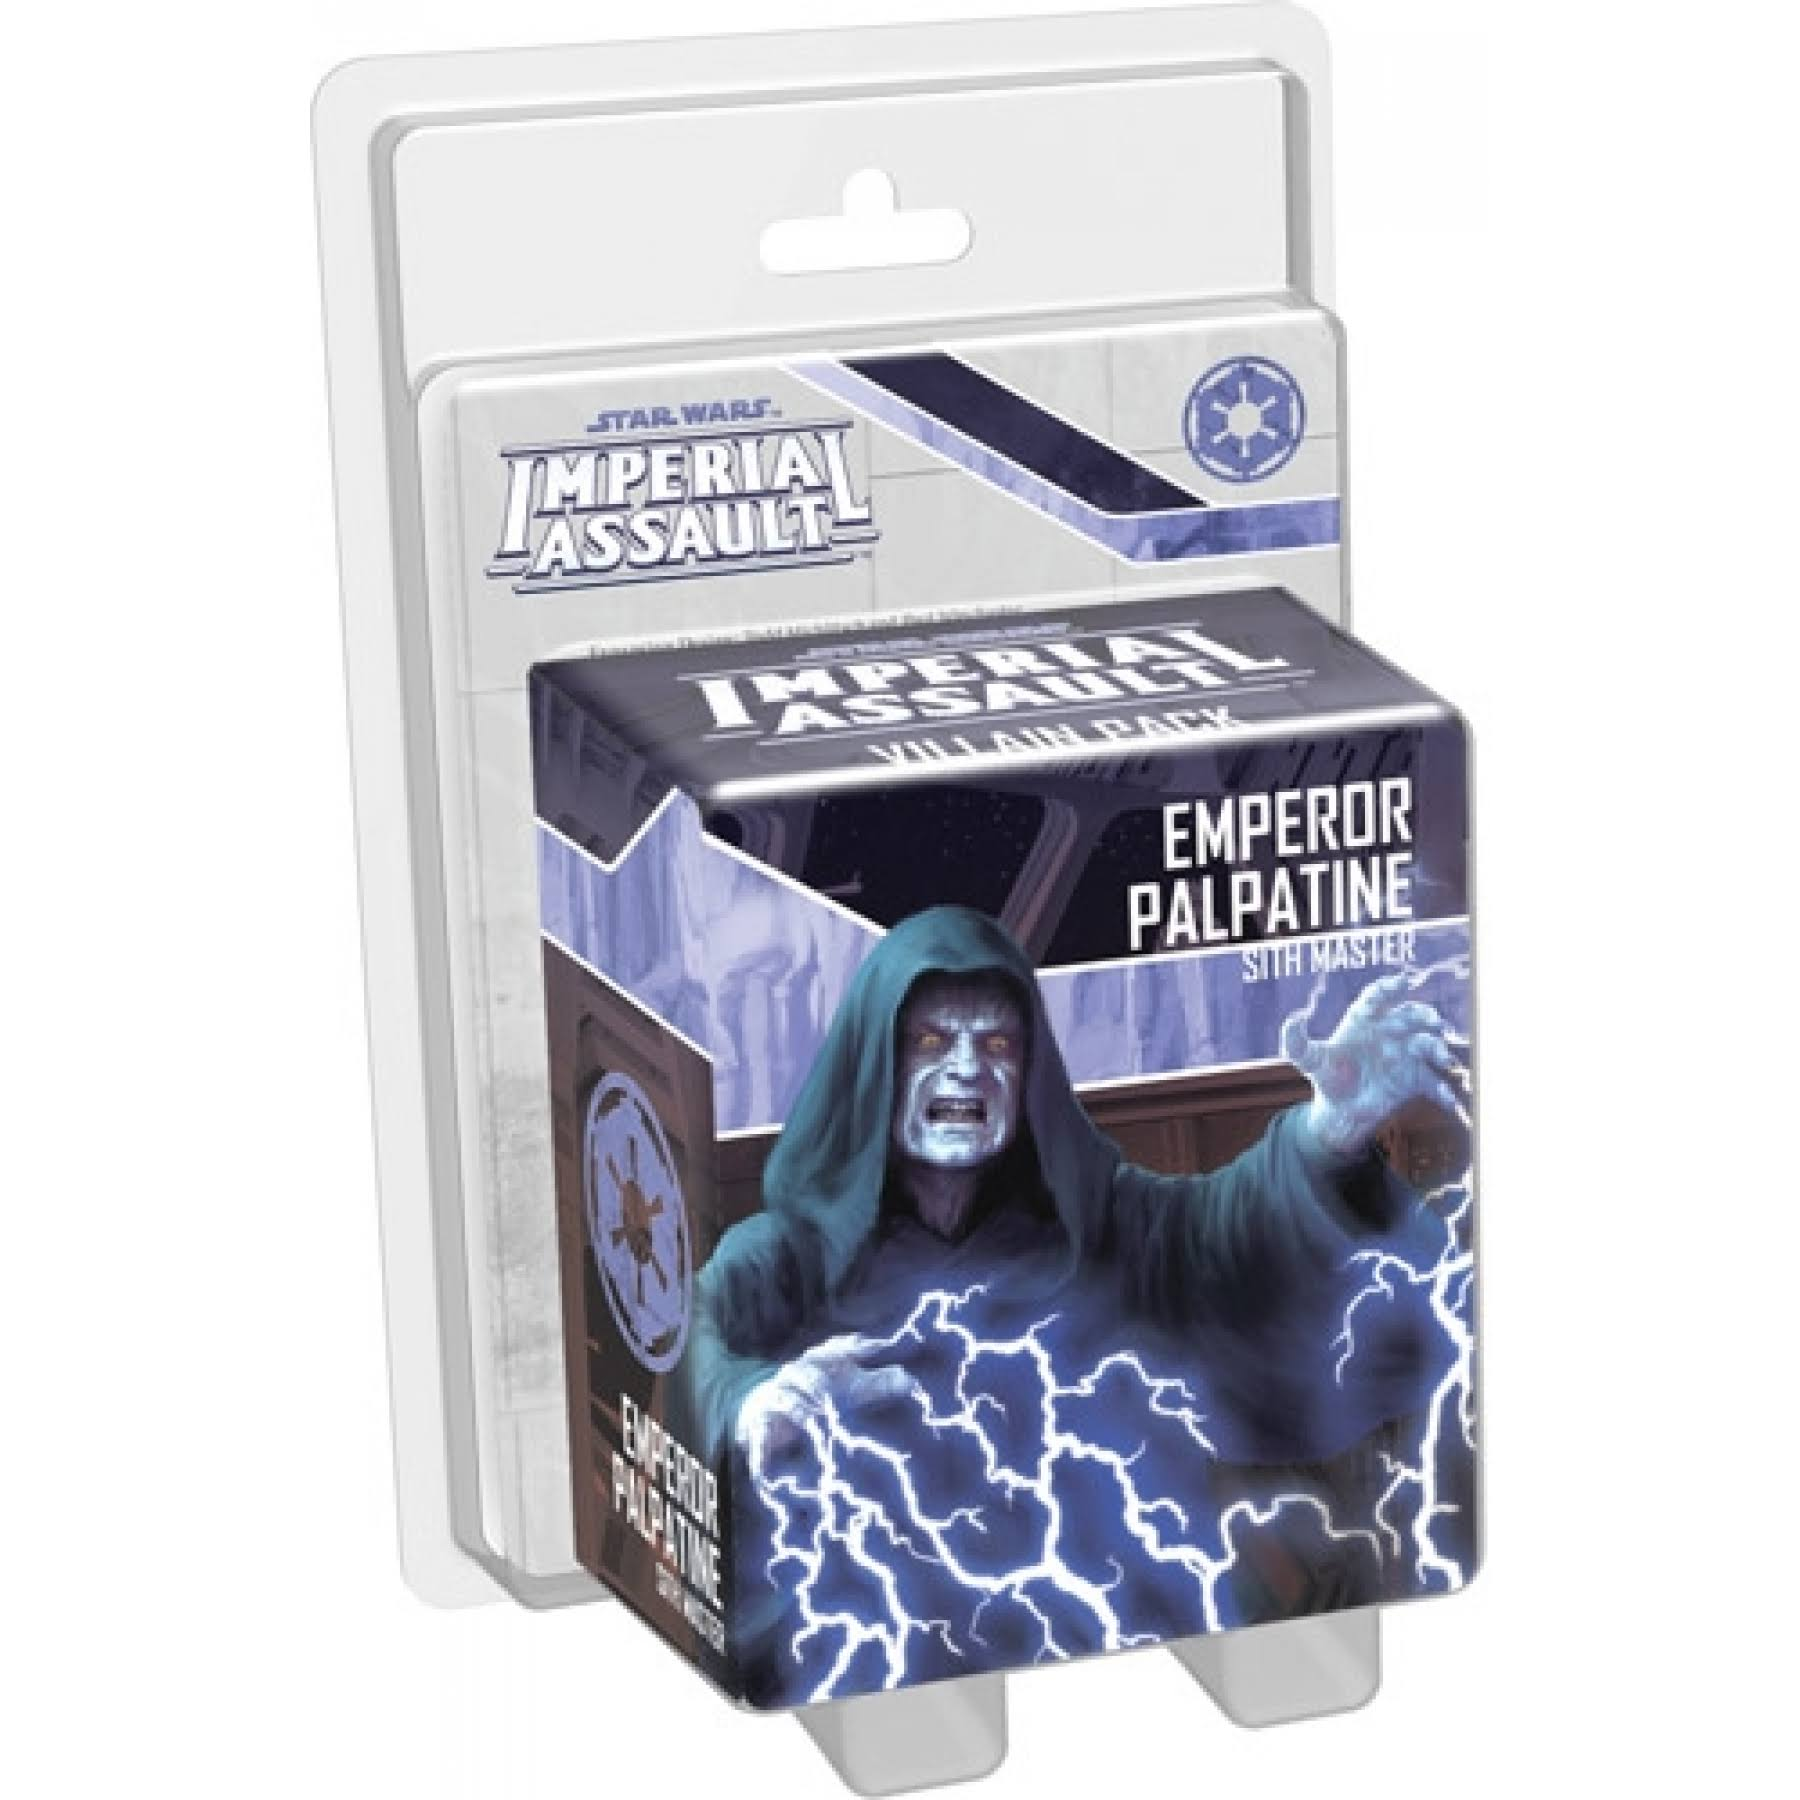 Star Wars Imperial Assault Emperor Palpatine Villain Pack Miniature Game